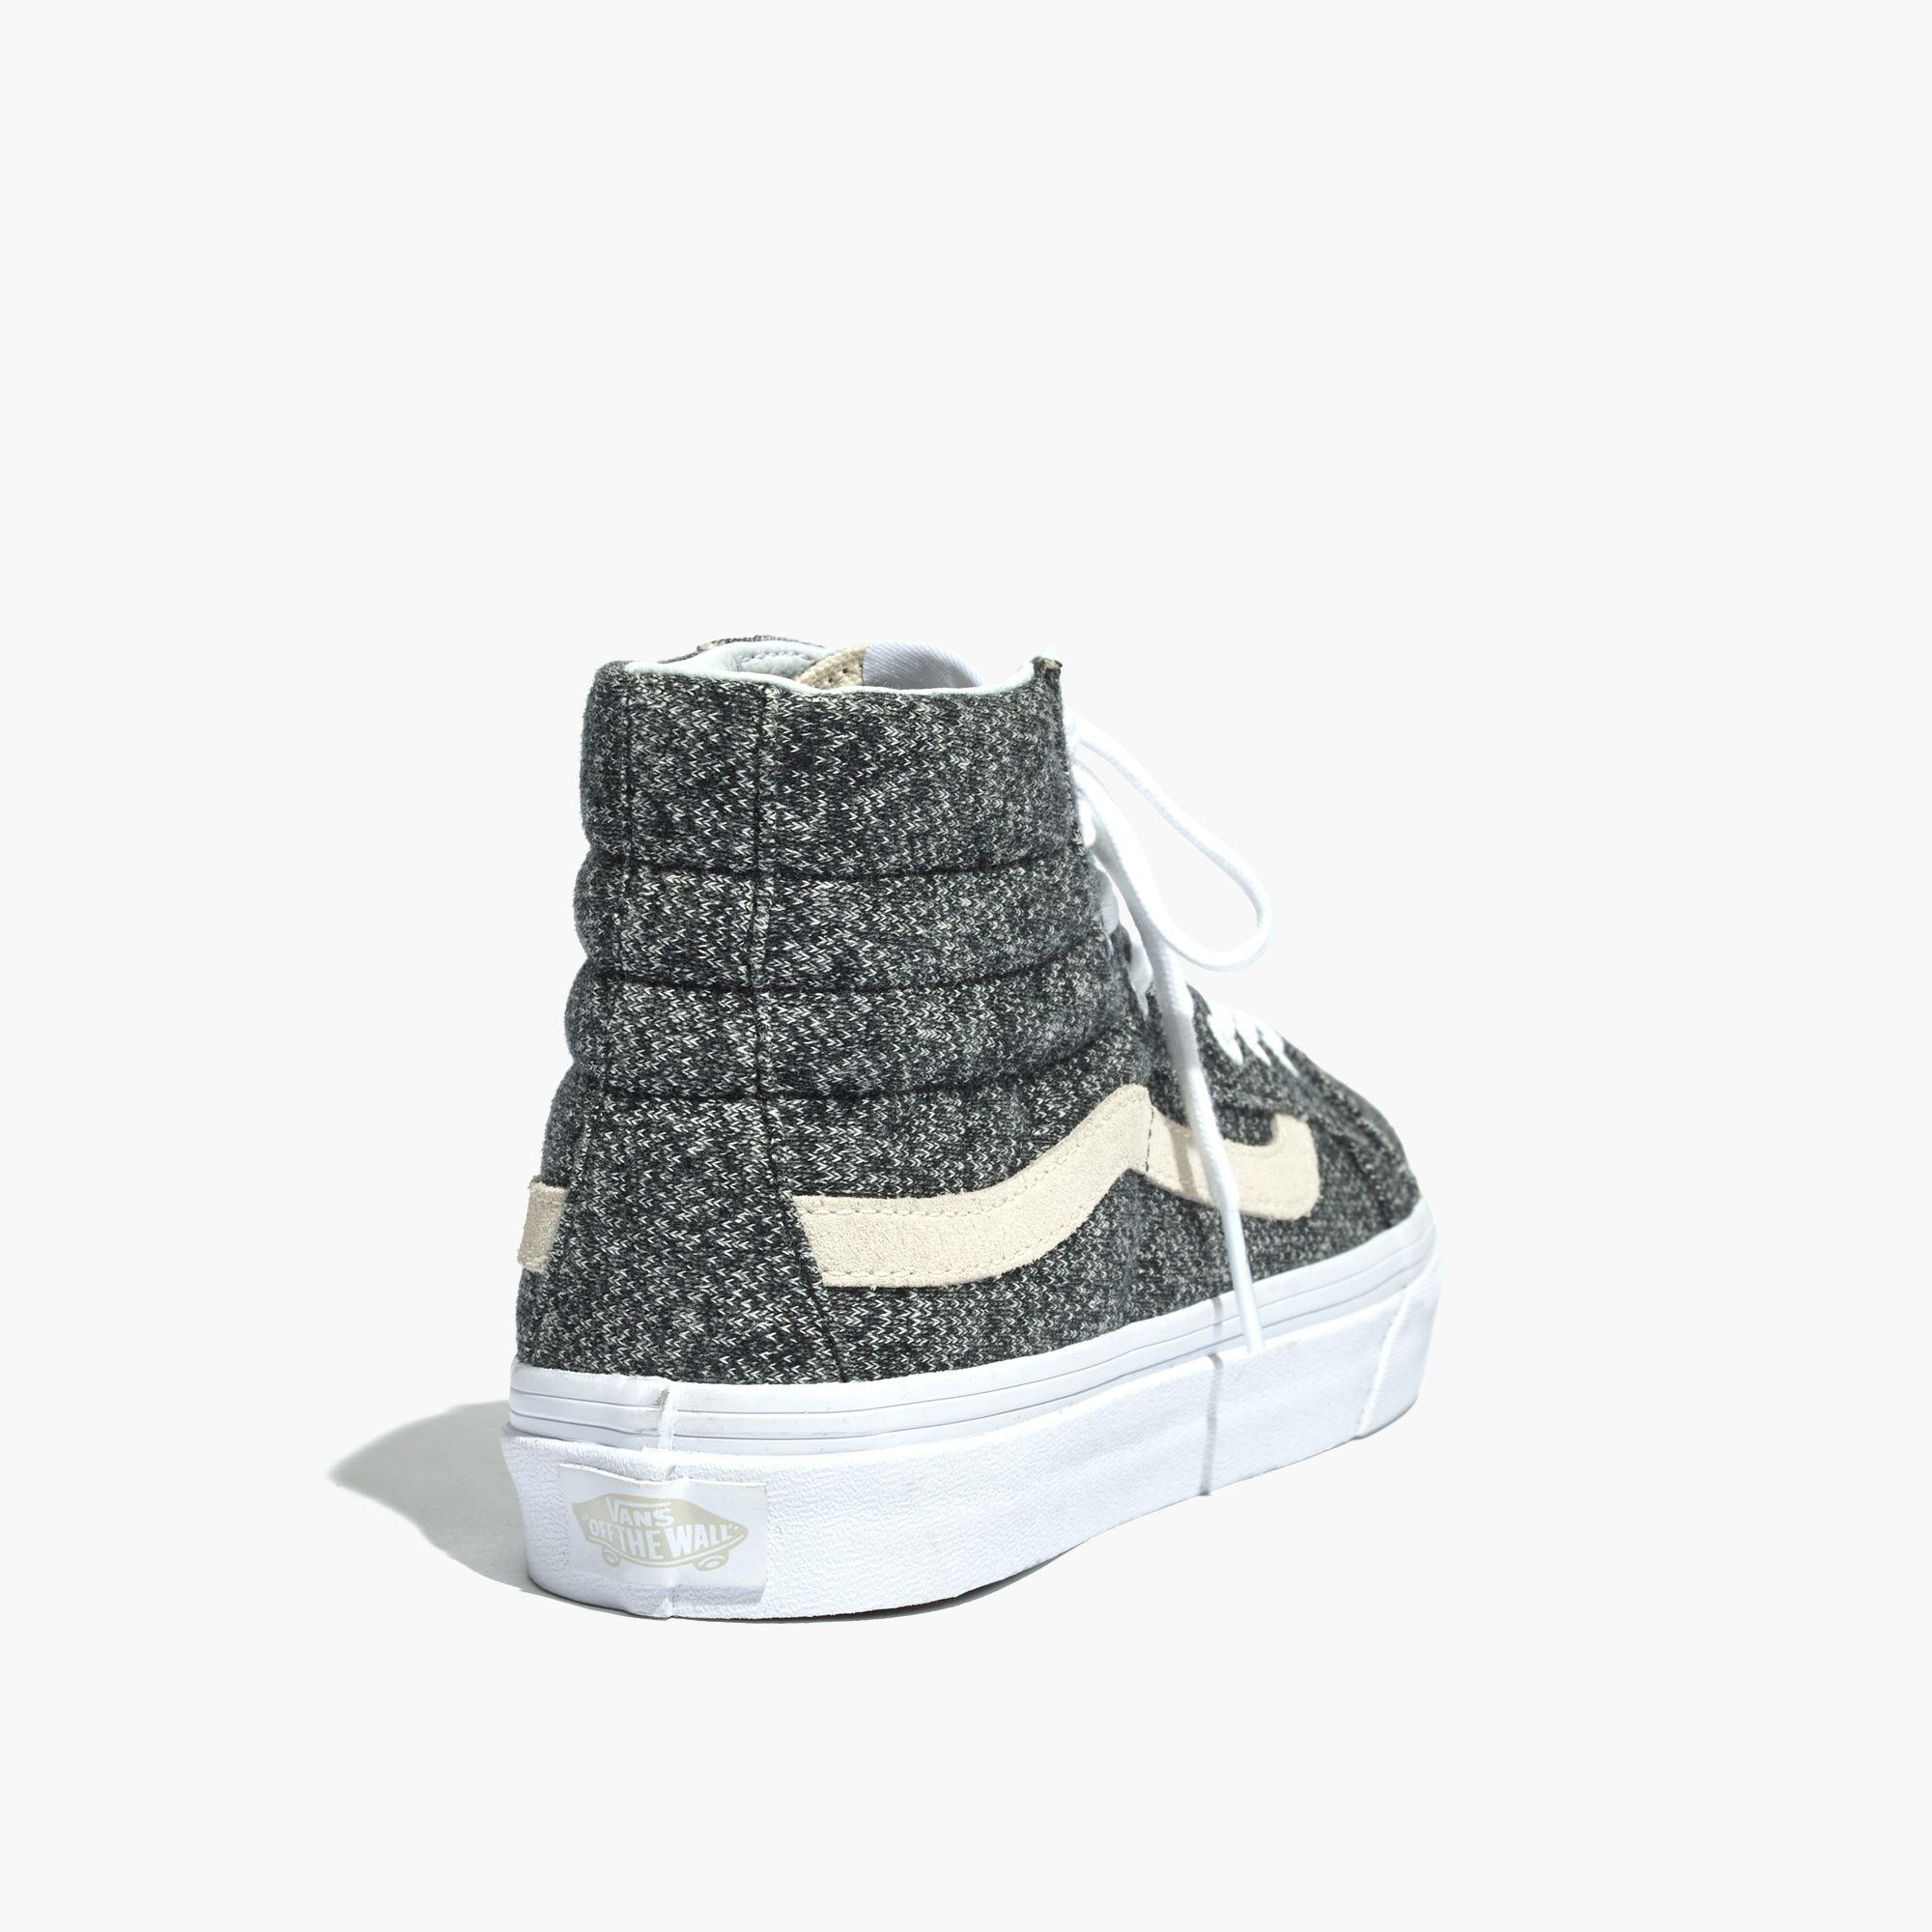 72c5f0245e97d4 Lyst - Madewell Vans® Unisex Sk8-hi High-top Sneakers In Marled ...